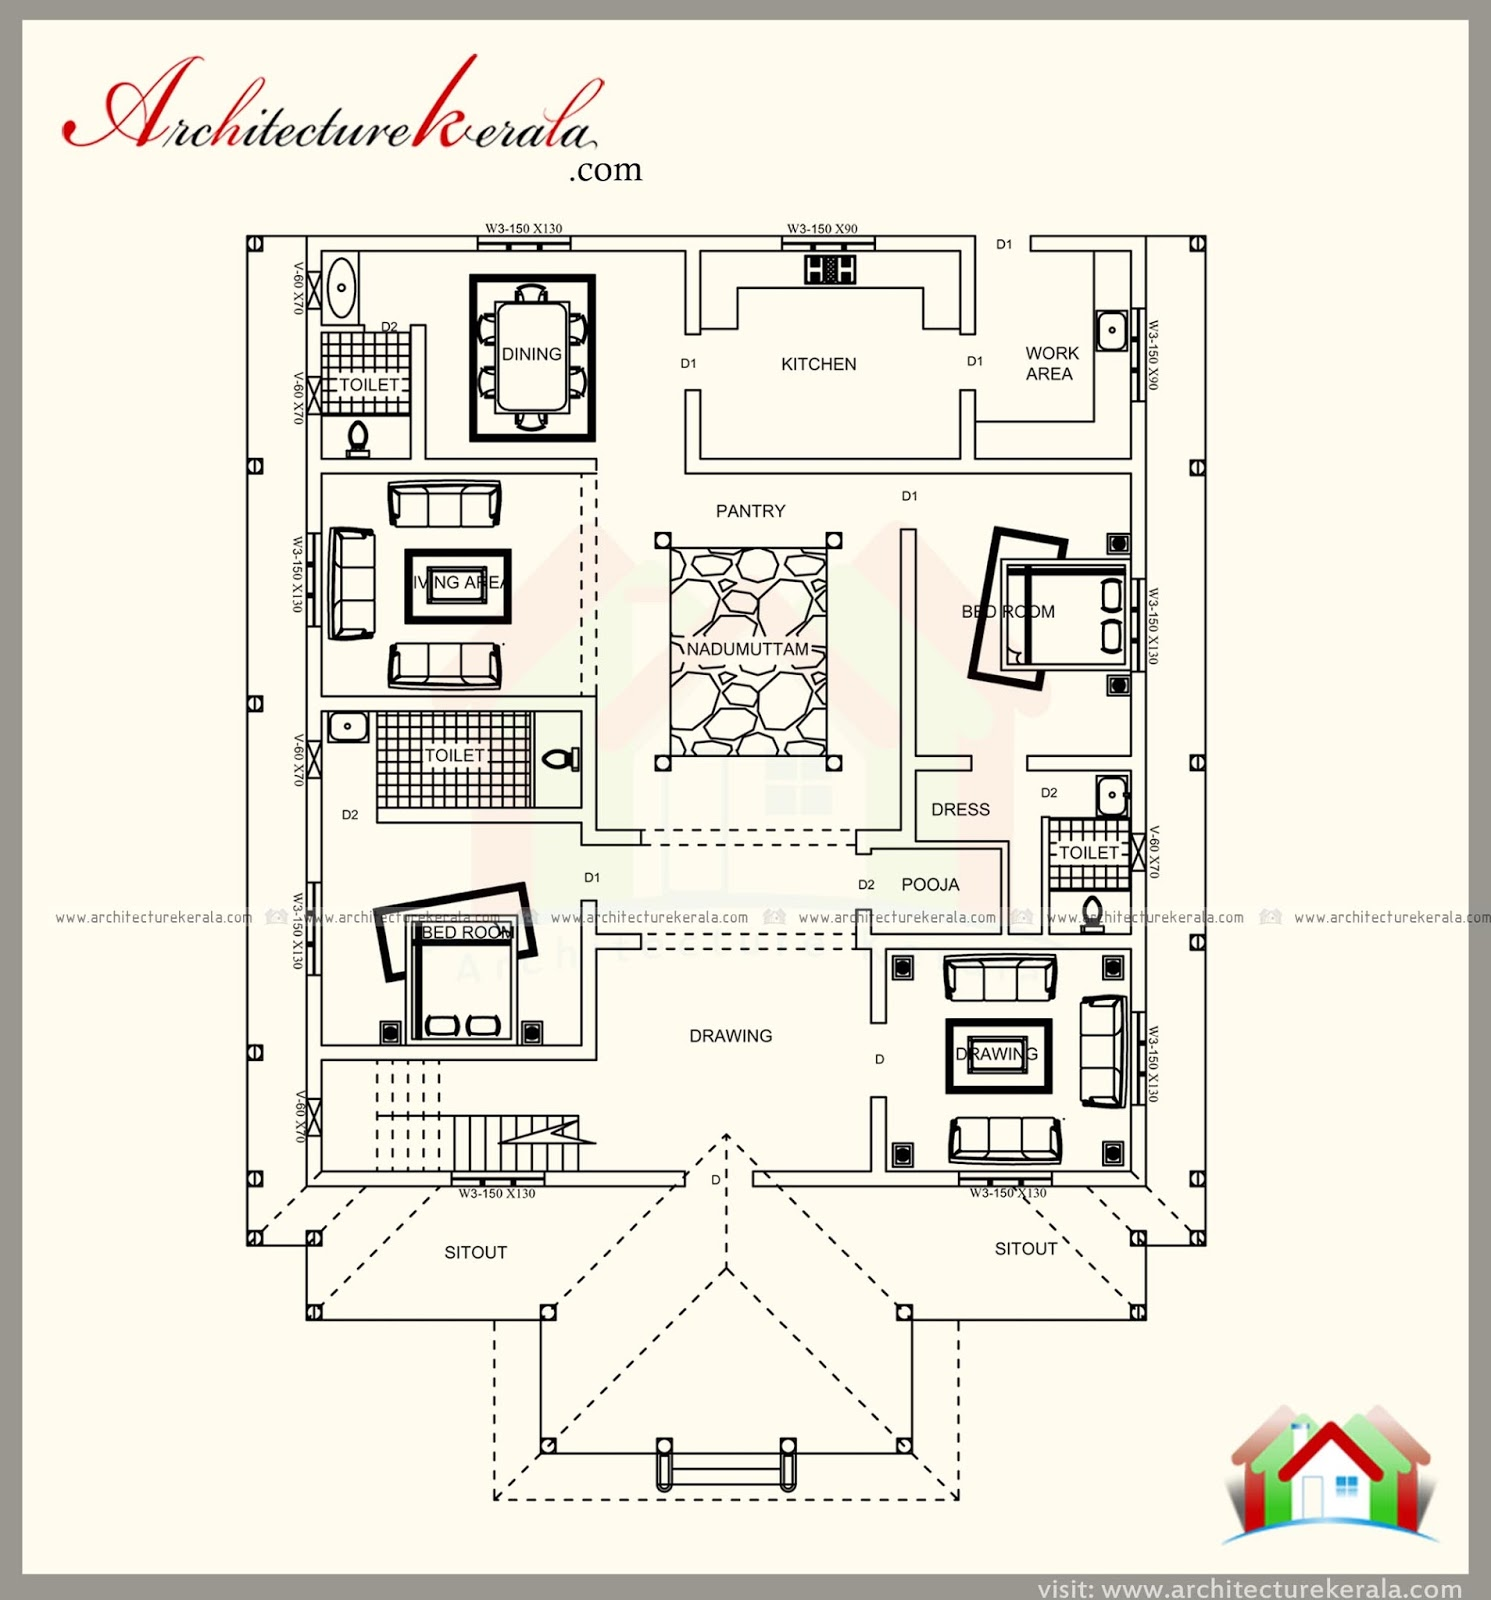 Kerala Home Design February 2016: TRADITIONAL KERALA STYLE HOUSE PLAN WITH TWO ELEVATIONS